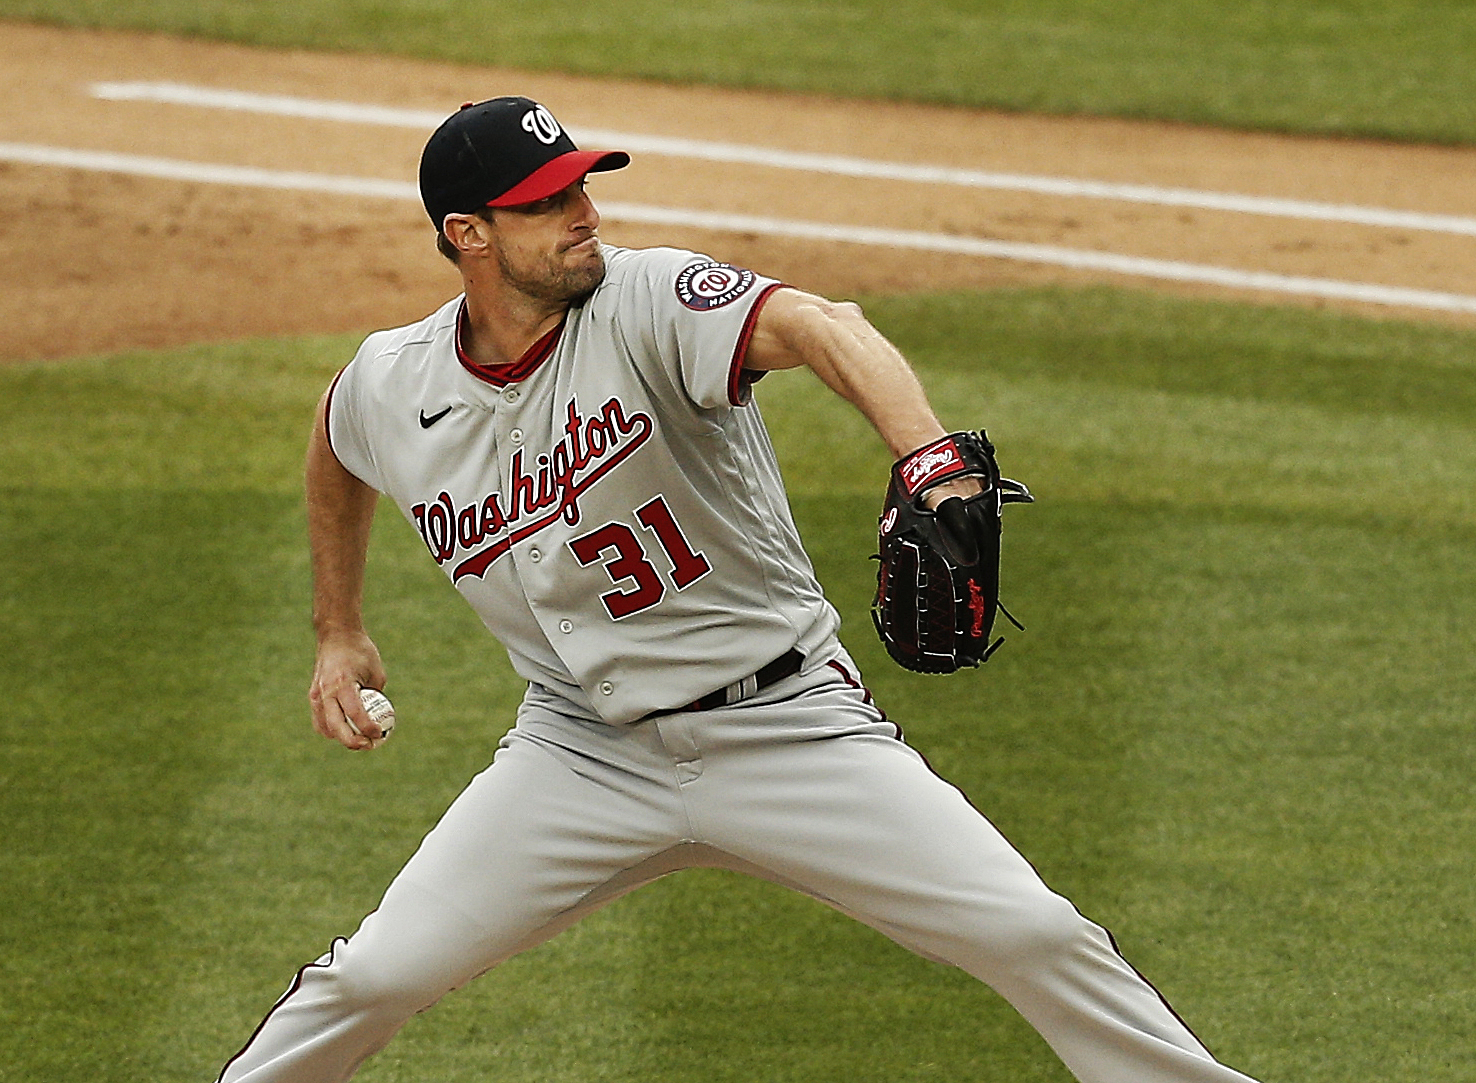 May 8, 2021; Bronx, New York, USA; Washington Nationals starting pitcher Max Scherzer (31) pitches against the New York Yankees during the first inning at Yankee Stadium. Mandatory Credit: Andy Marlin-USA TODAY Sports